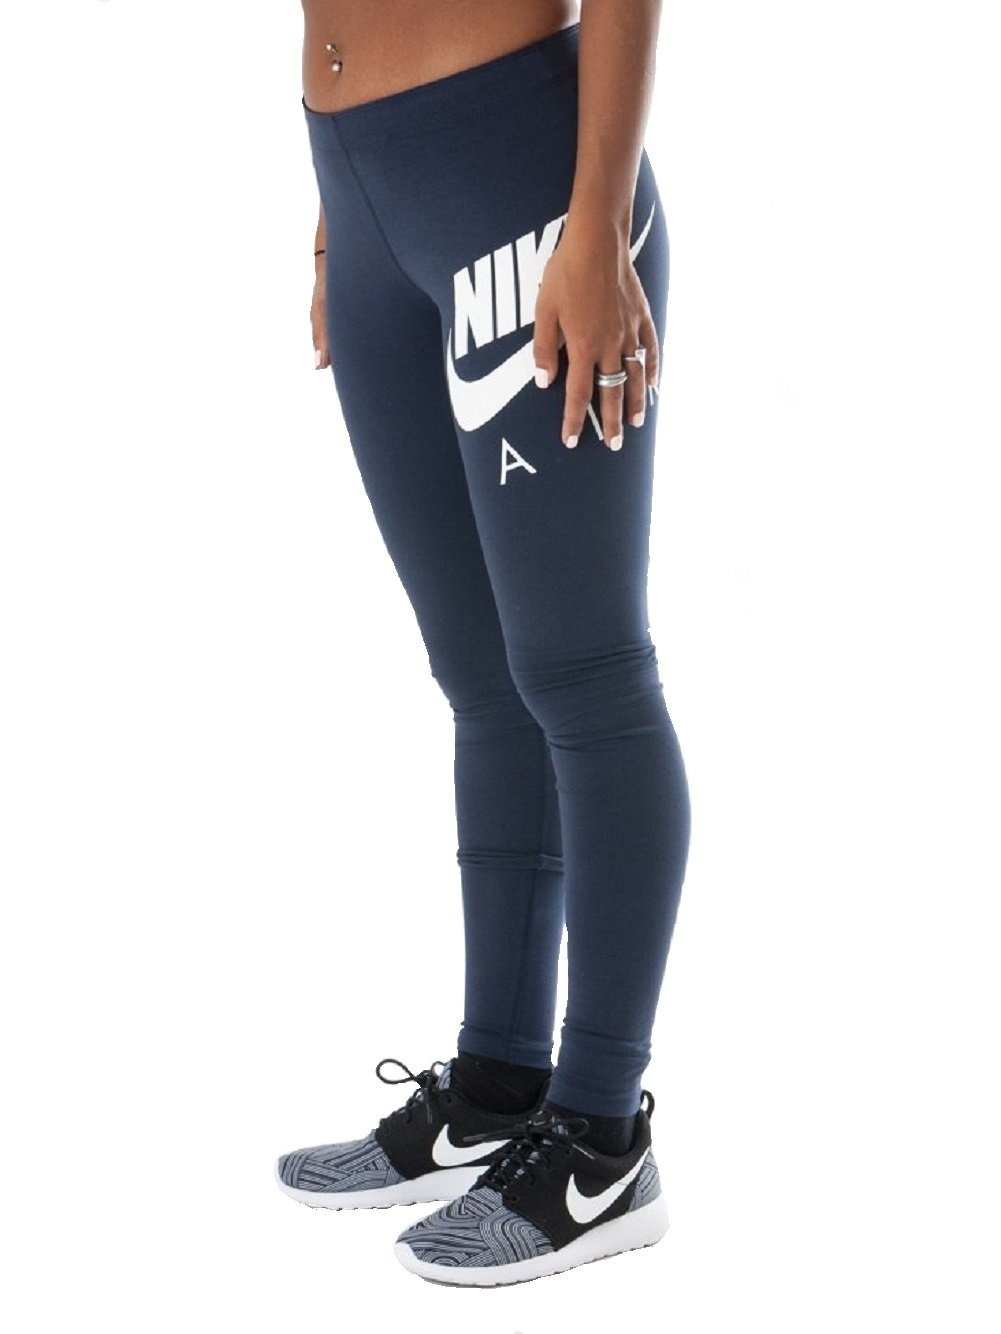 e97a71c18e126 Nike W NSW LGGNG AIR - Tights for Women, Size: Amazon.co.uk: Sports &  Outdoors